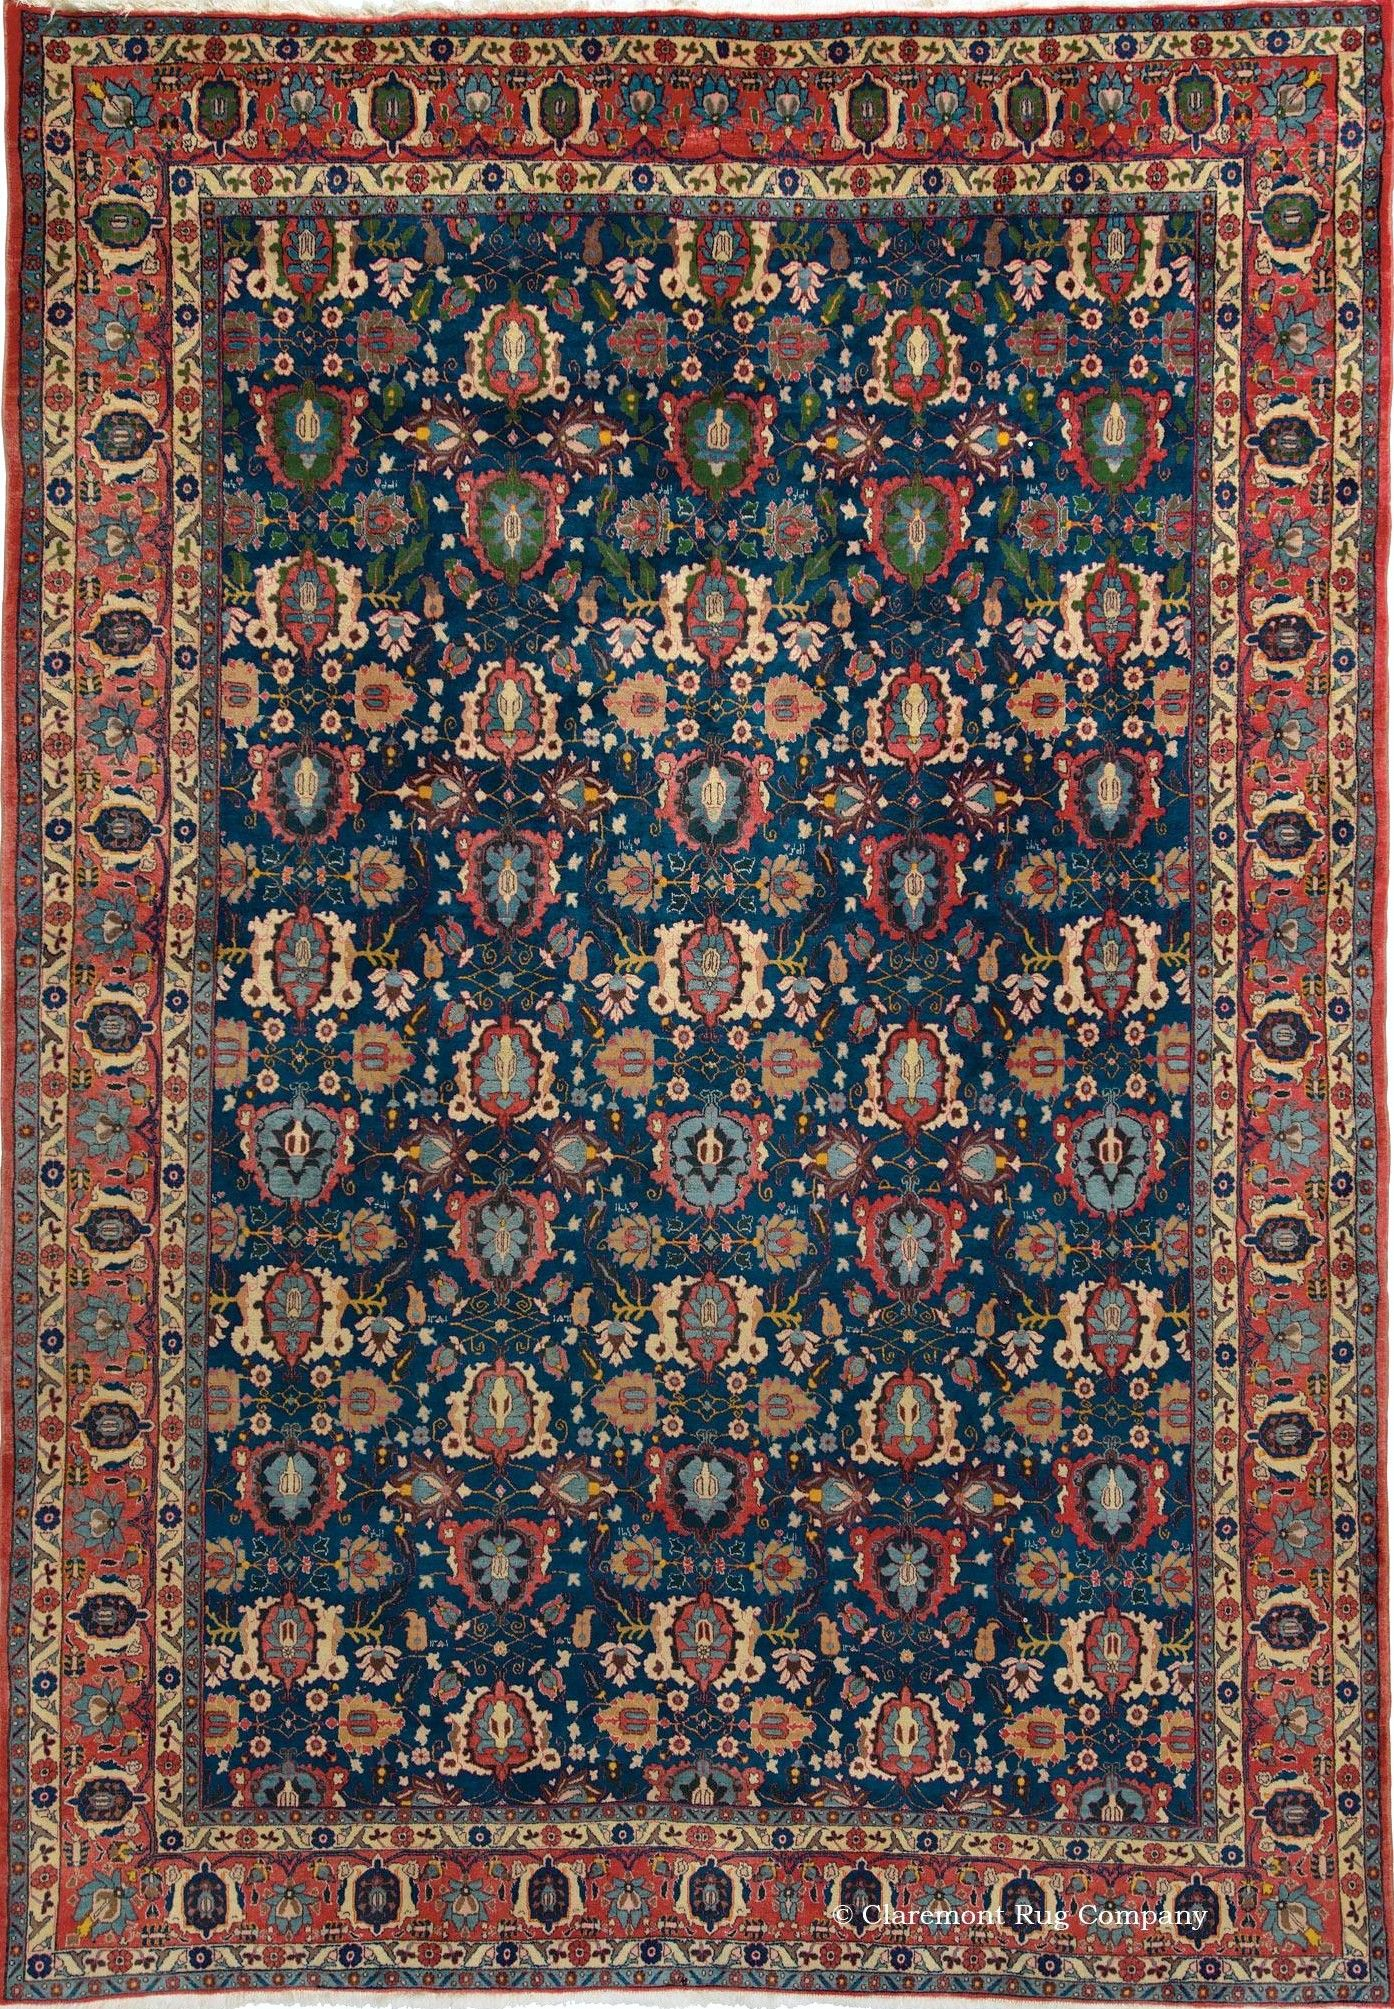 Persian Veramin Rug 7ft 2in X 10ft 4in Circa 1925 Claremont Gallery Carpet Handmade Antique Oriental Rugs Rugs On Carpet